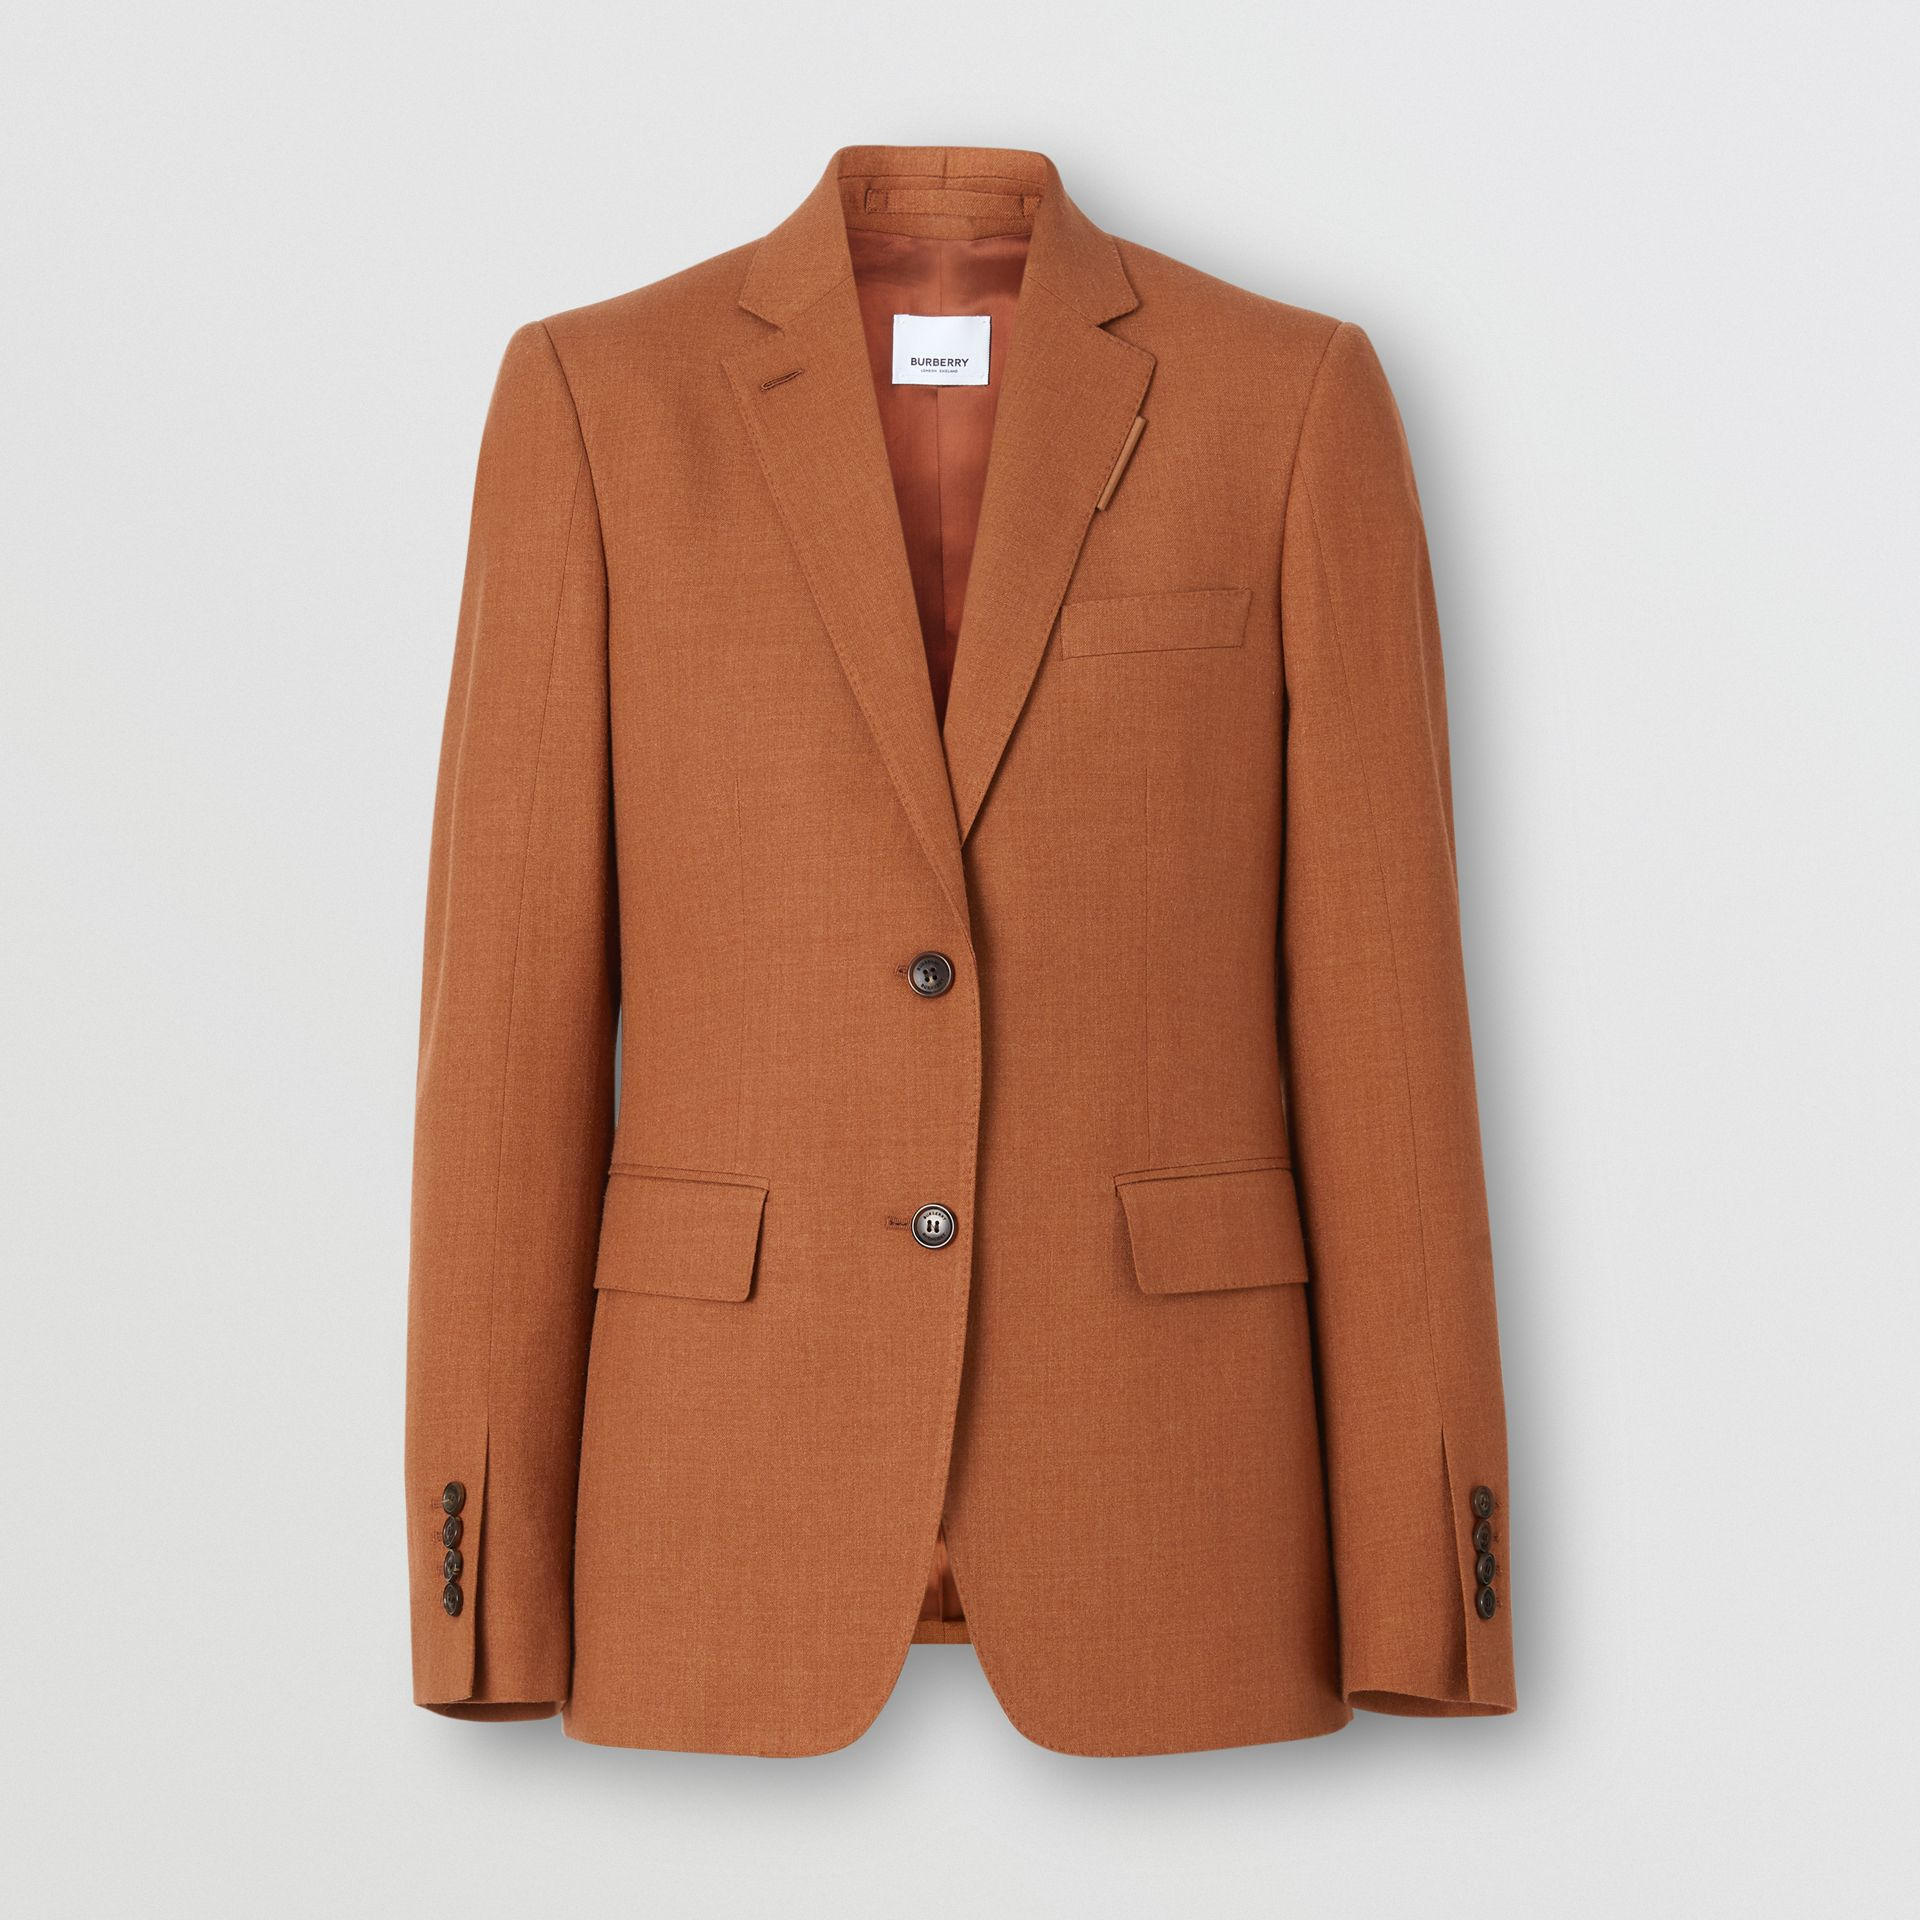 Wool, Silk and Cotton Blazer in Rust - Women | Burberry Hong Kong S.A.R - gallery image 3